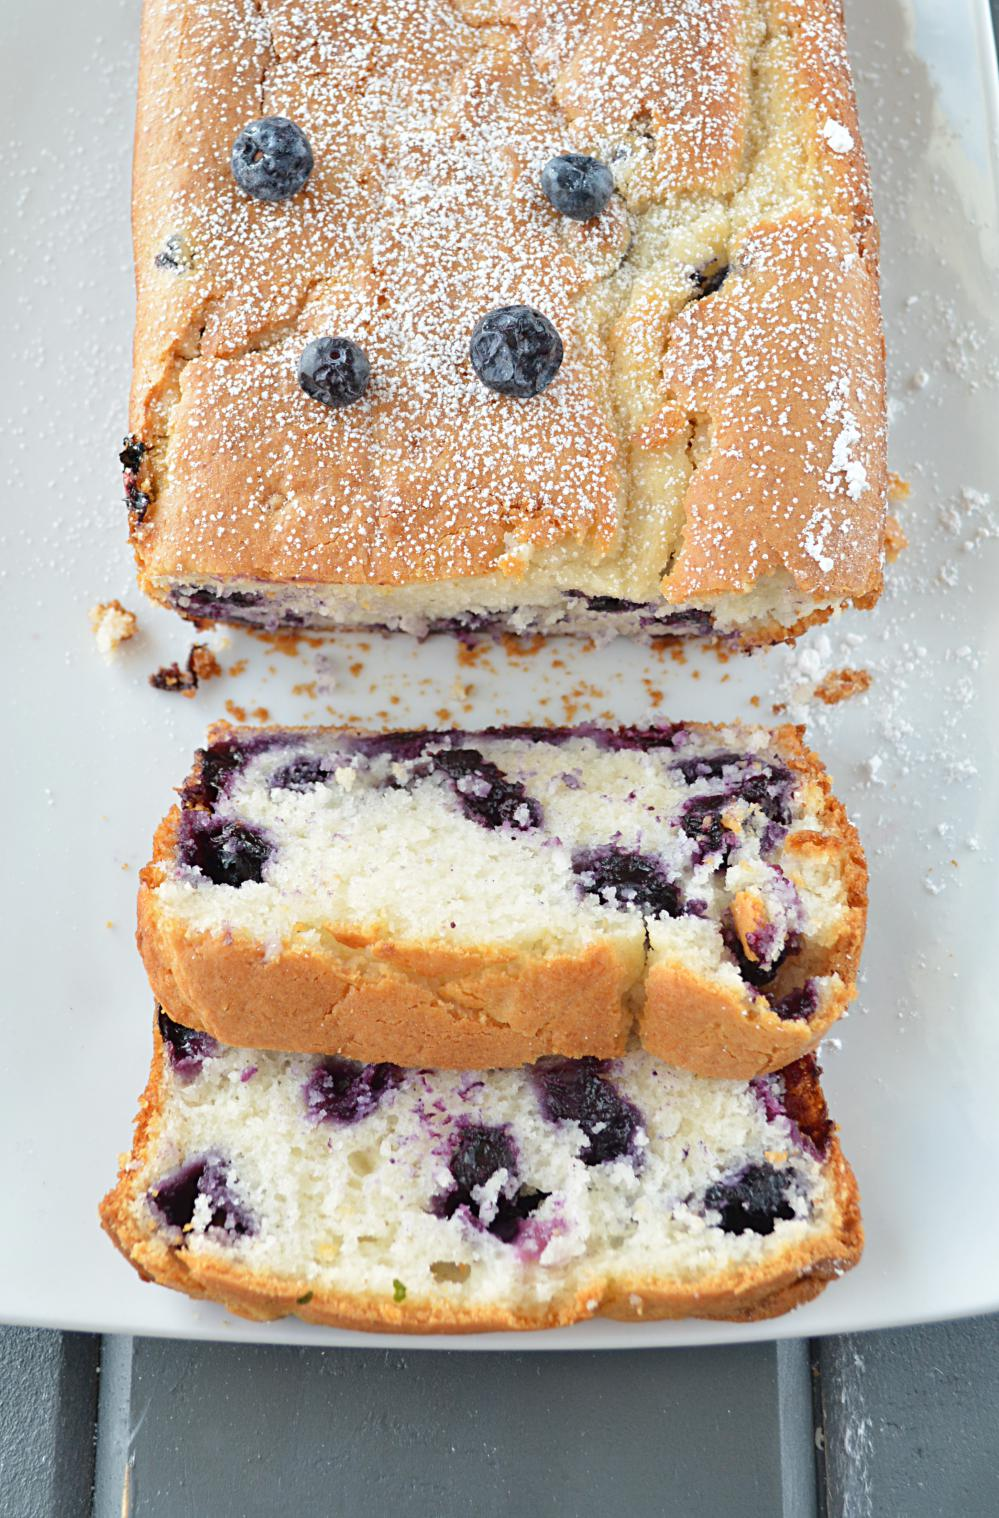 Eggless Blueberry Cake Using Cake Mix